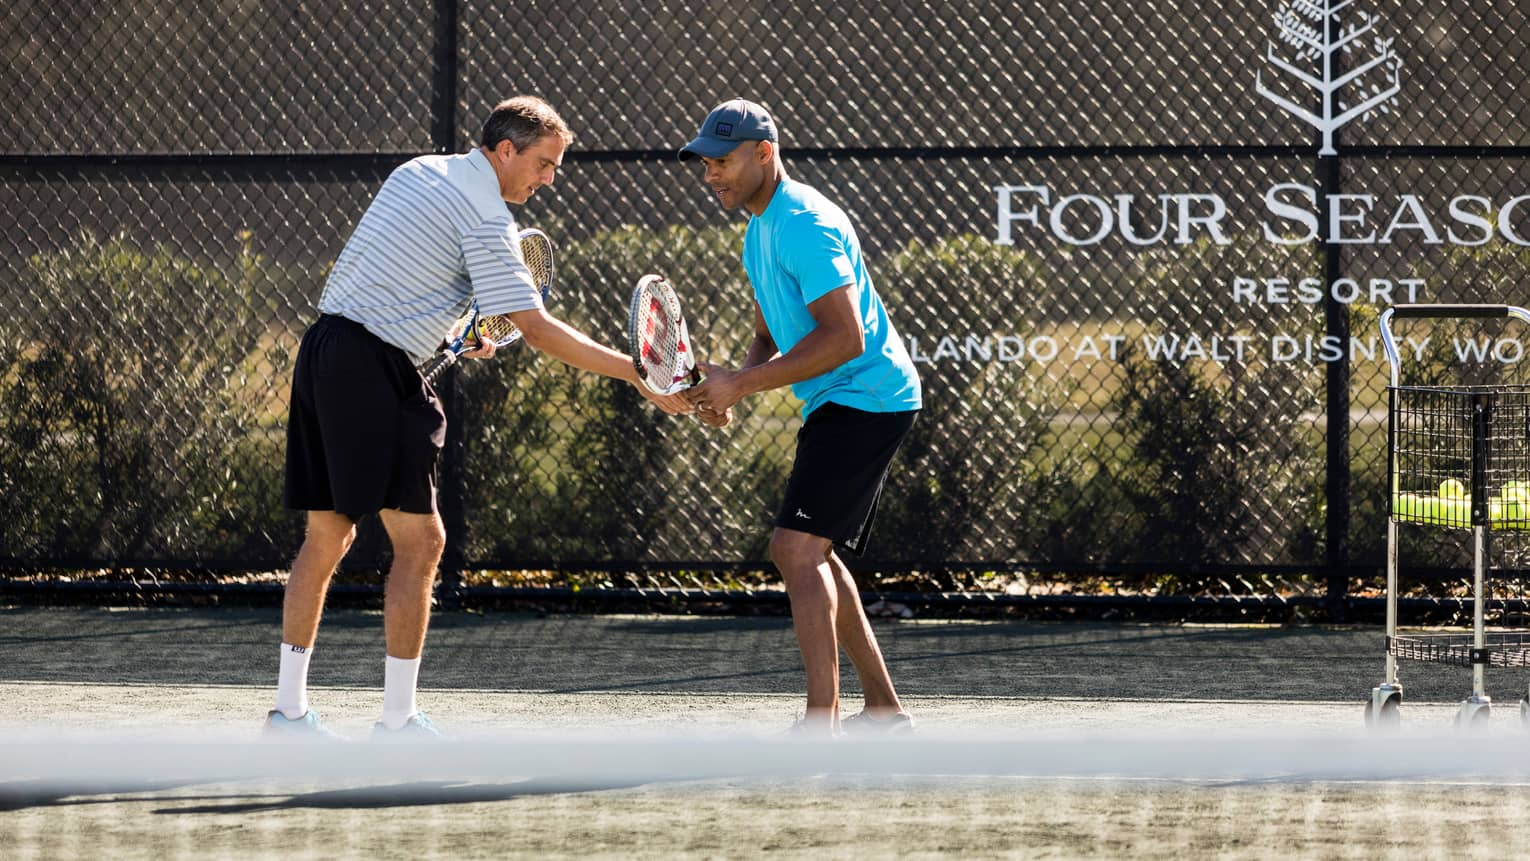 Tennis pro helps man adjust his racket on tennis court by Four Seasons Resort logo on fence